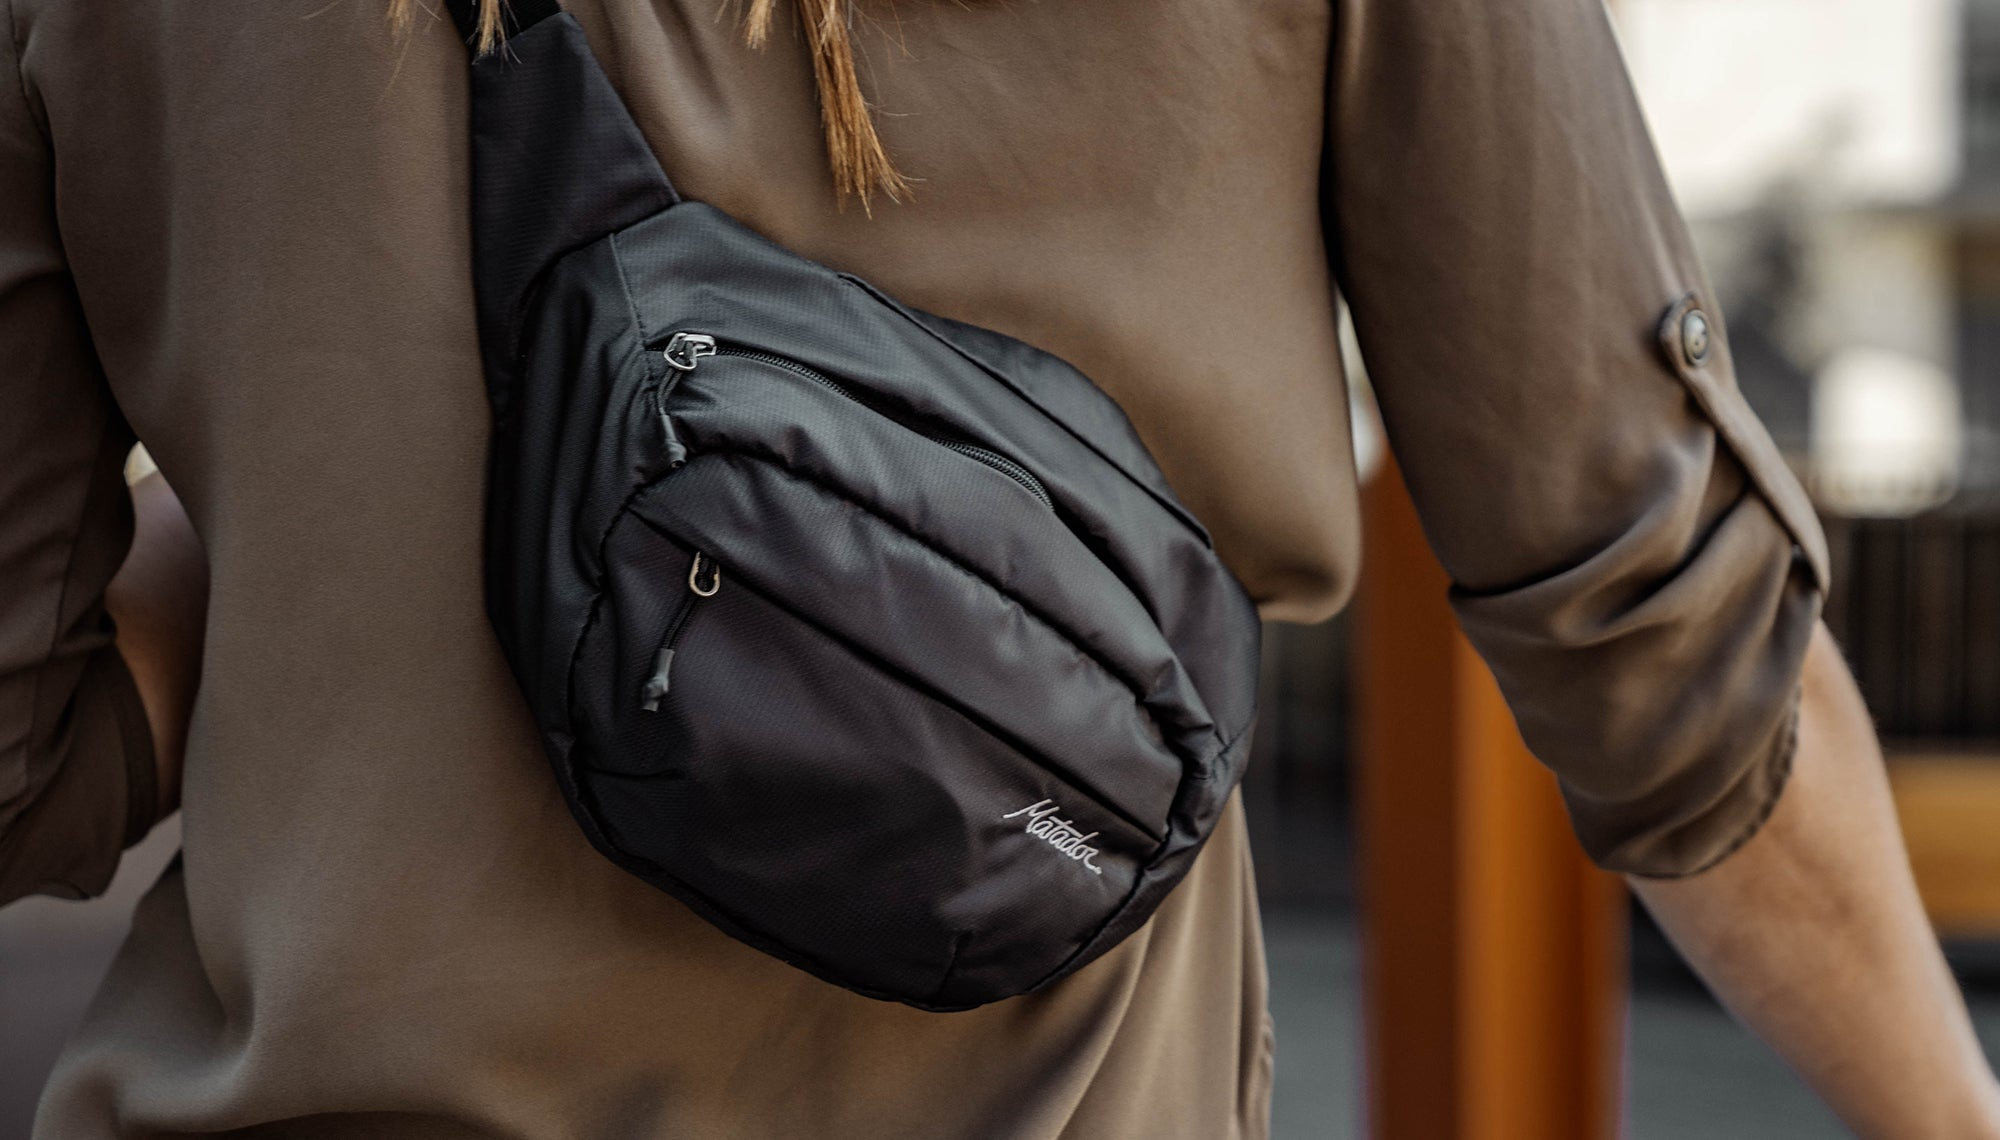 Woman in city, wearing hip pack across her back